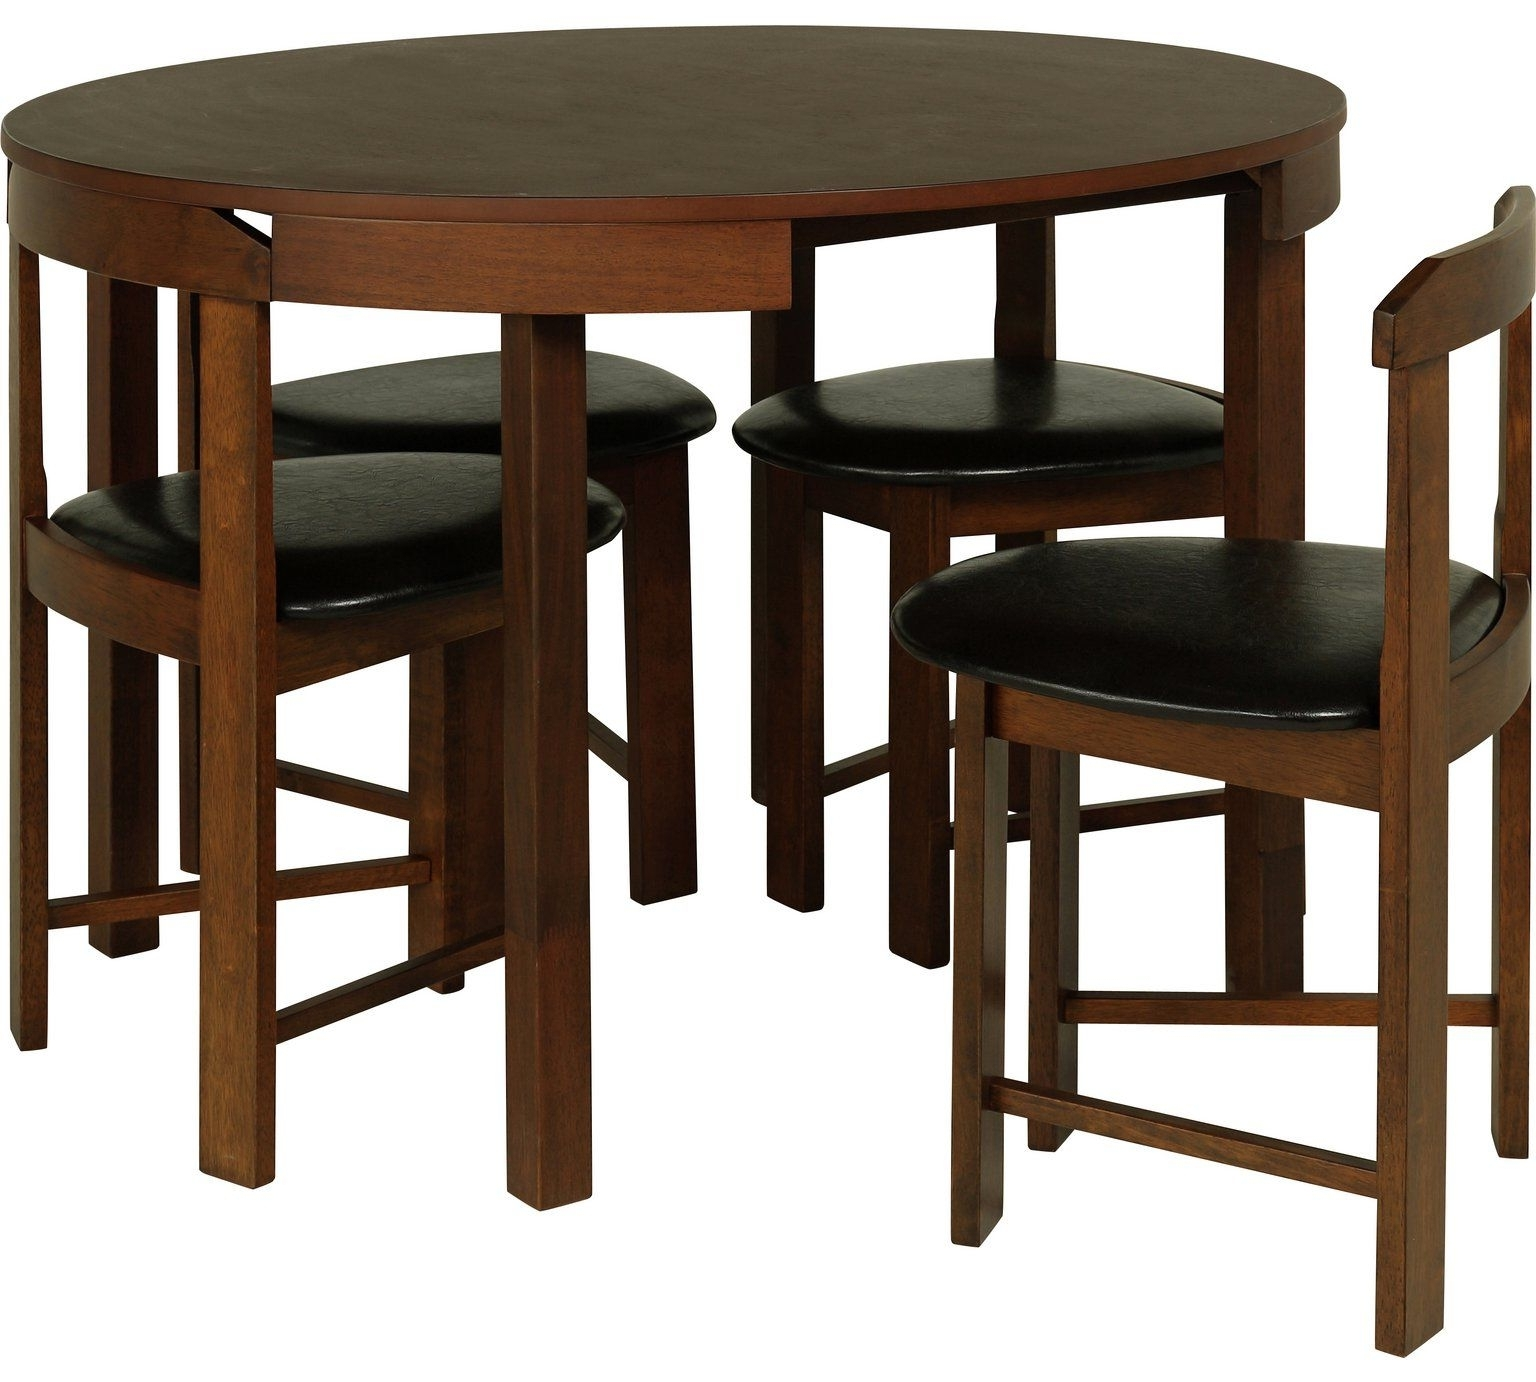 Buy Hygena Alena Circular Solid Wood Table & 4 Chairs – Black At With Most Up To Date Circular Dining Tables For  (View 2 of 25)